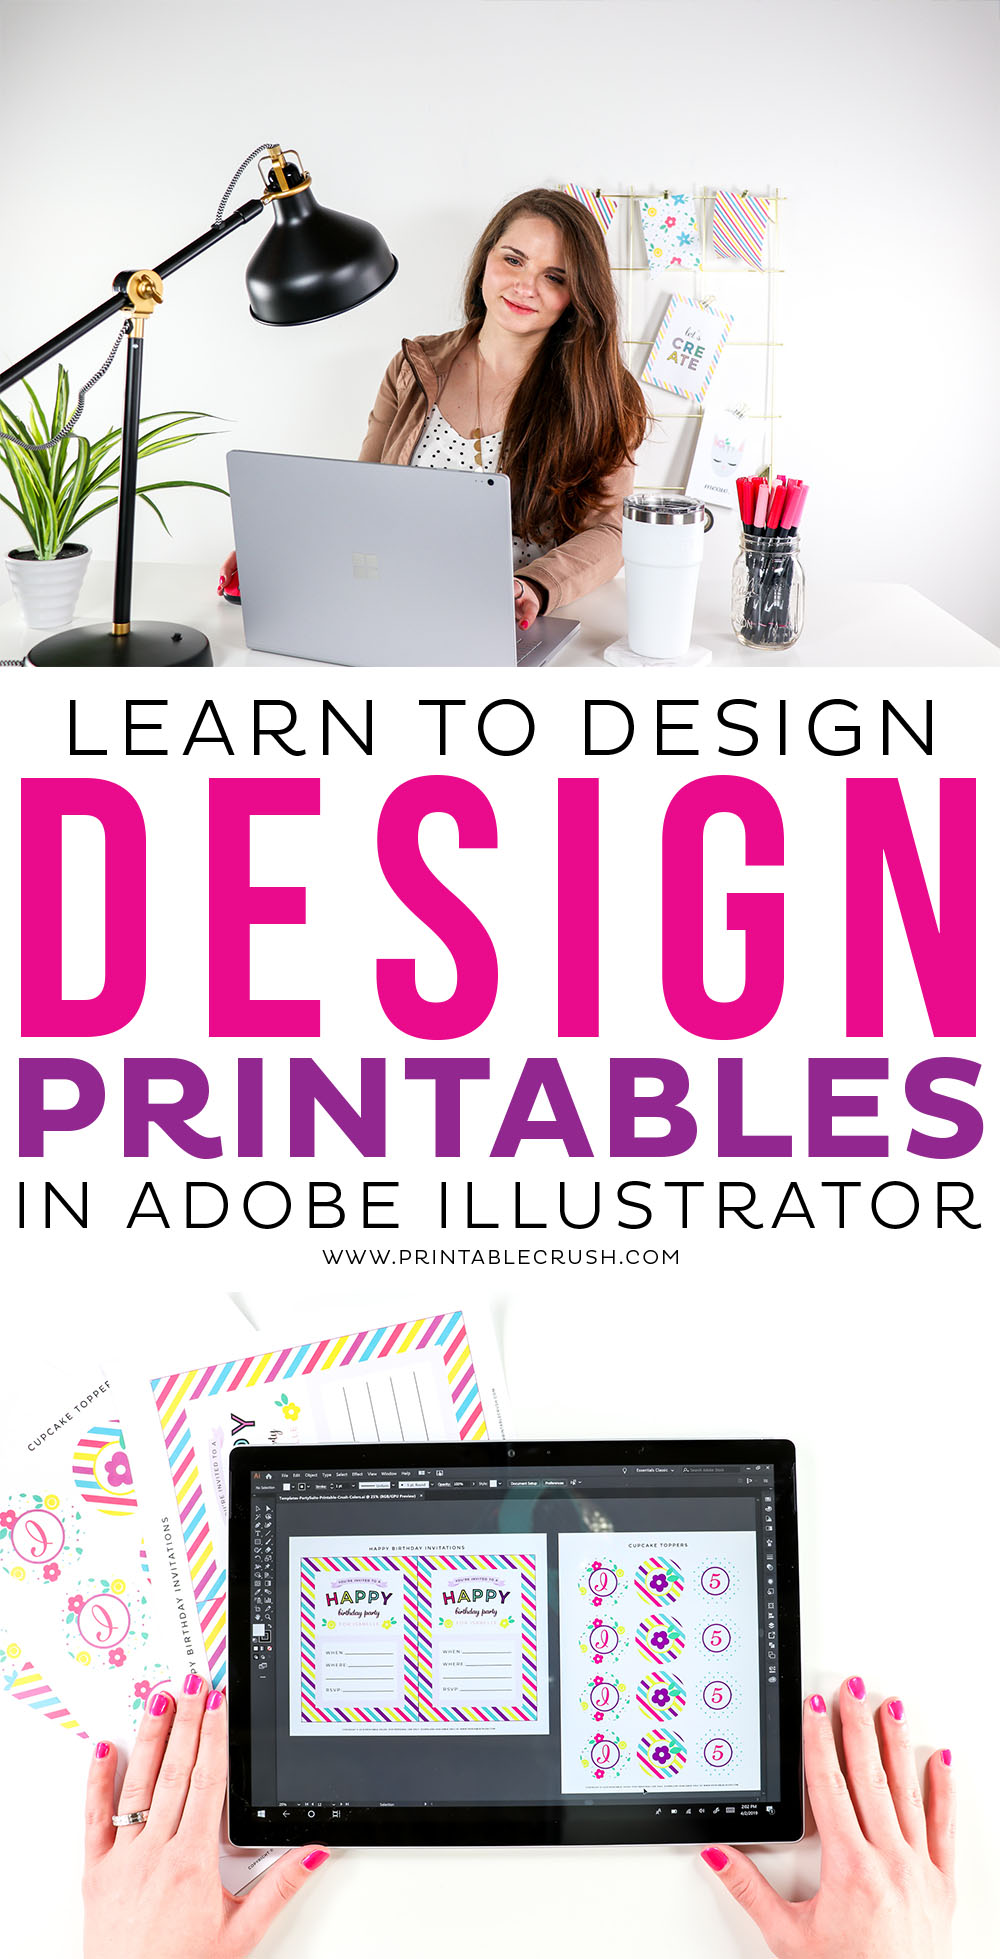 Feeling overwhelmed with learning a new design software? See how you can learn to design Printables in Adobe Illustrator! #printabledesignforbeginners #printabledesign #printables #entrepreneur #digitalproducts via @printablecrush